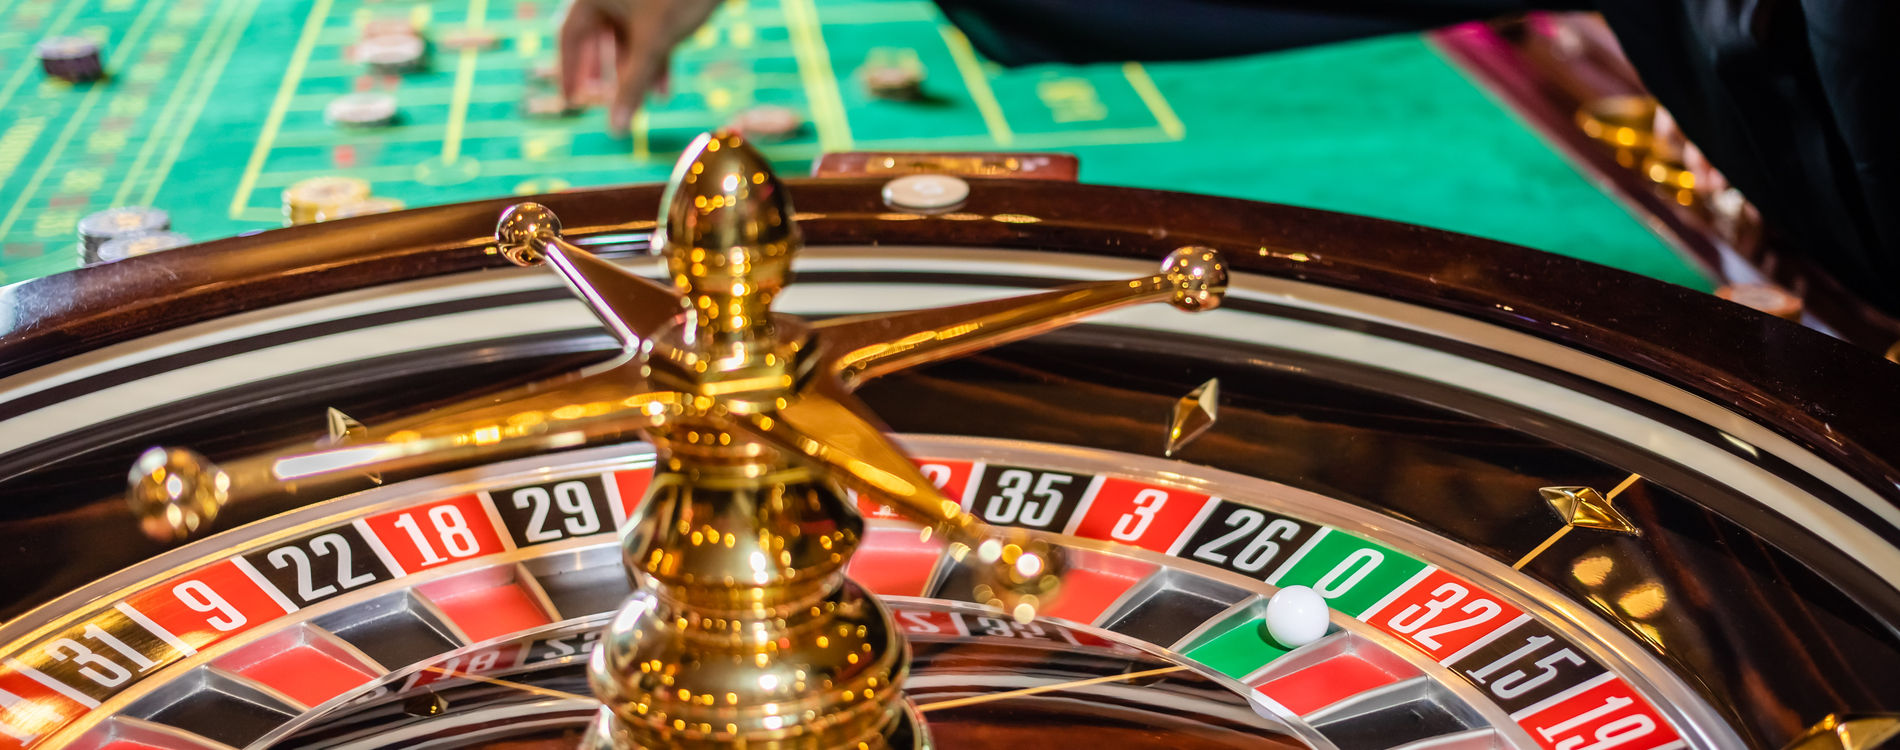 Tips to Win Playing Online Slots